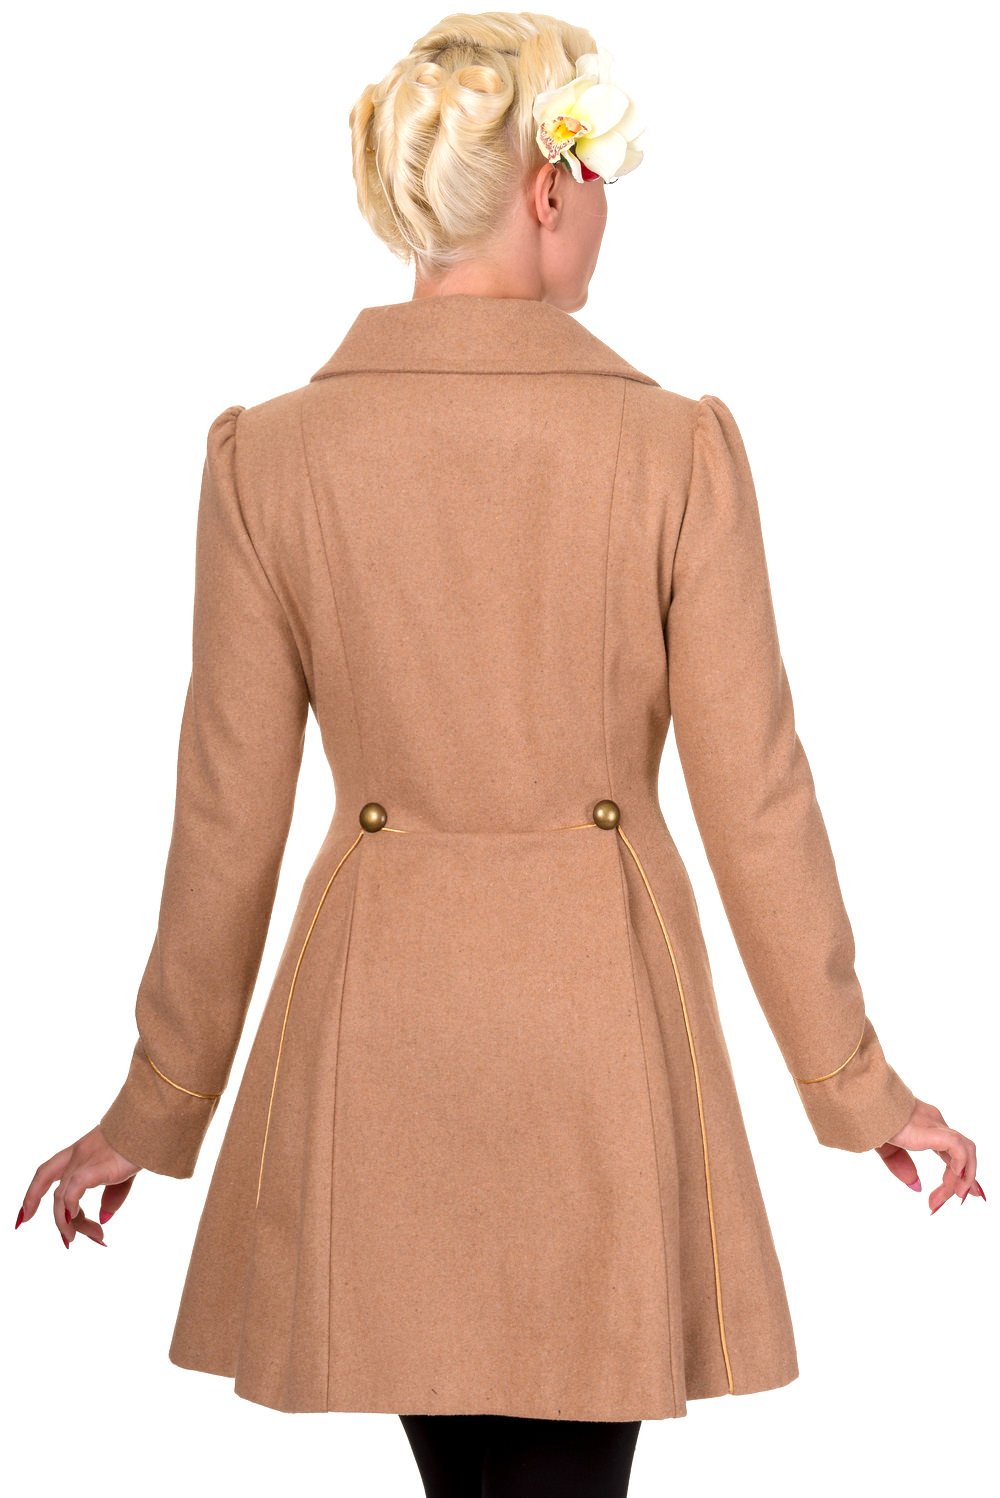 Banned Camel Into The Night 1940s Military Style Coat